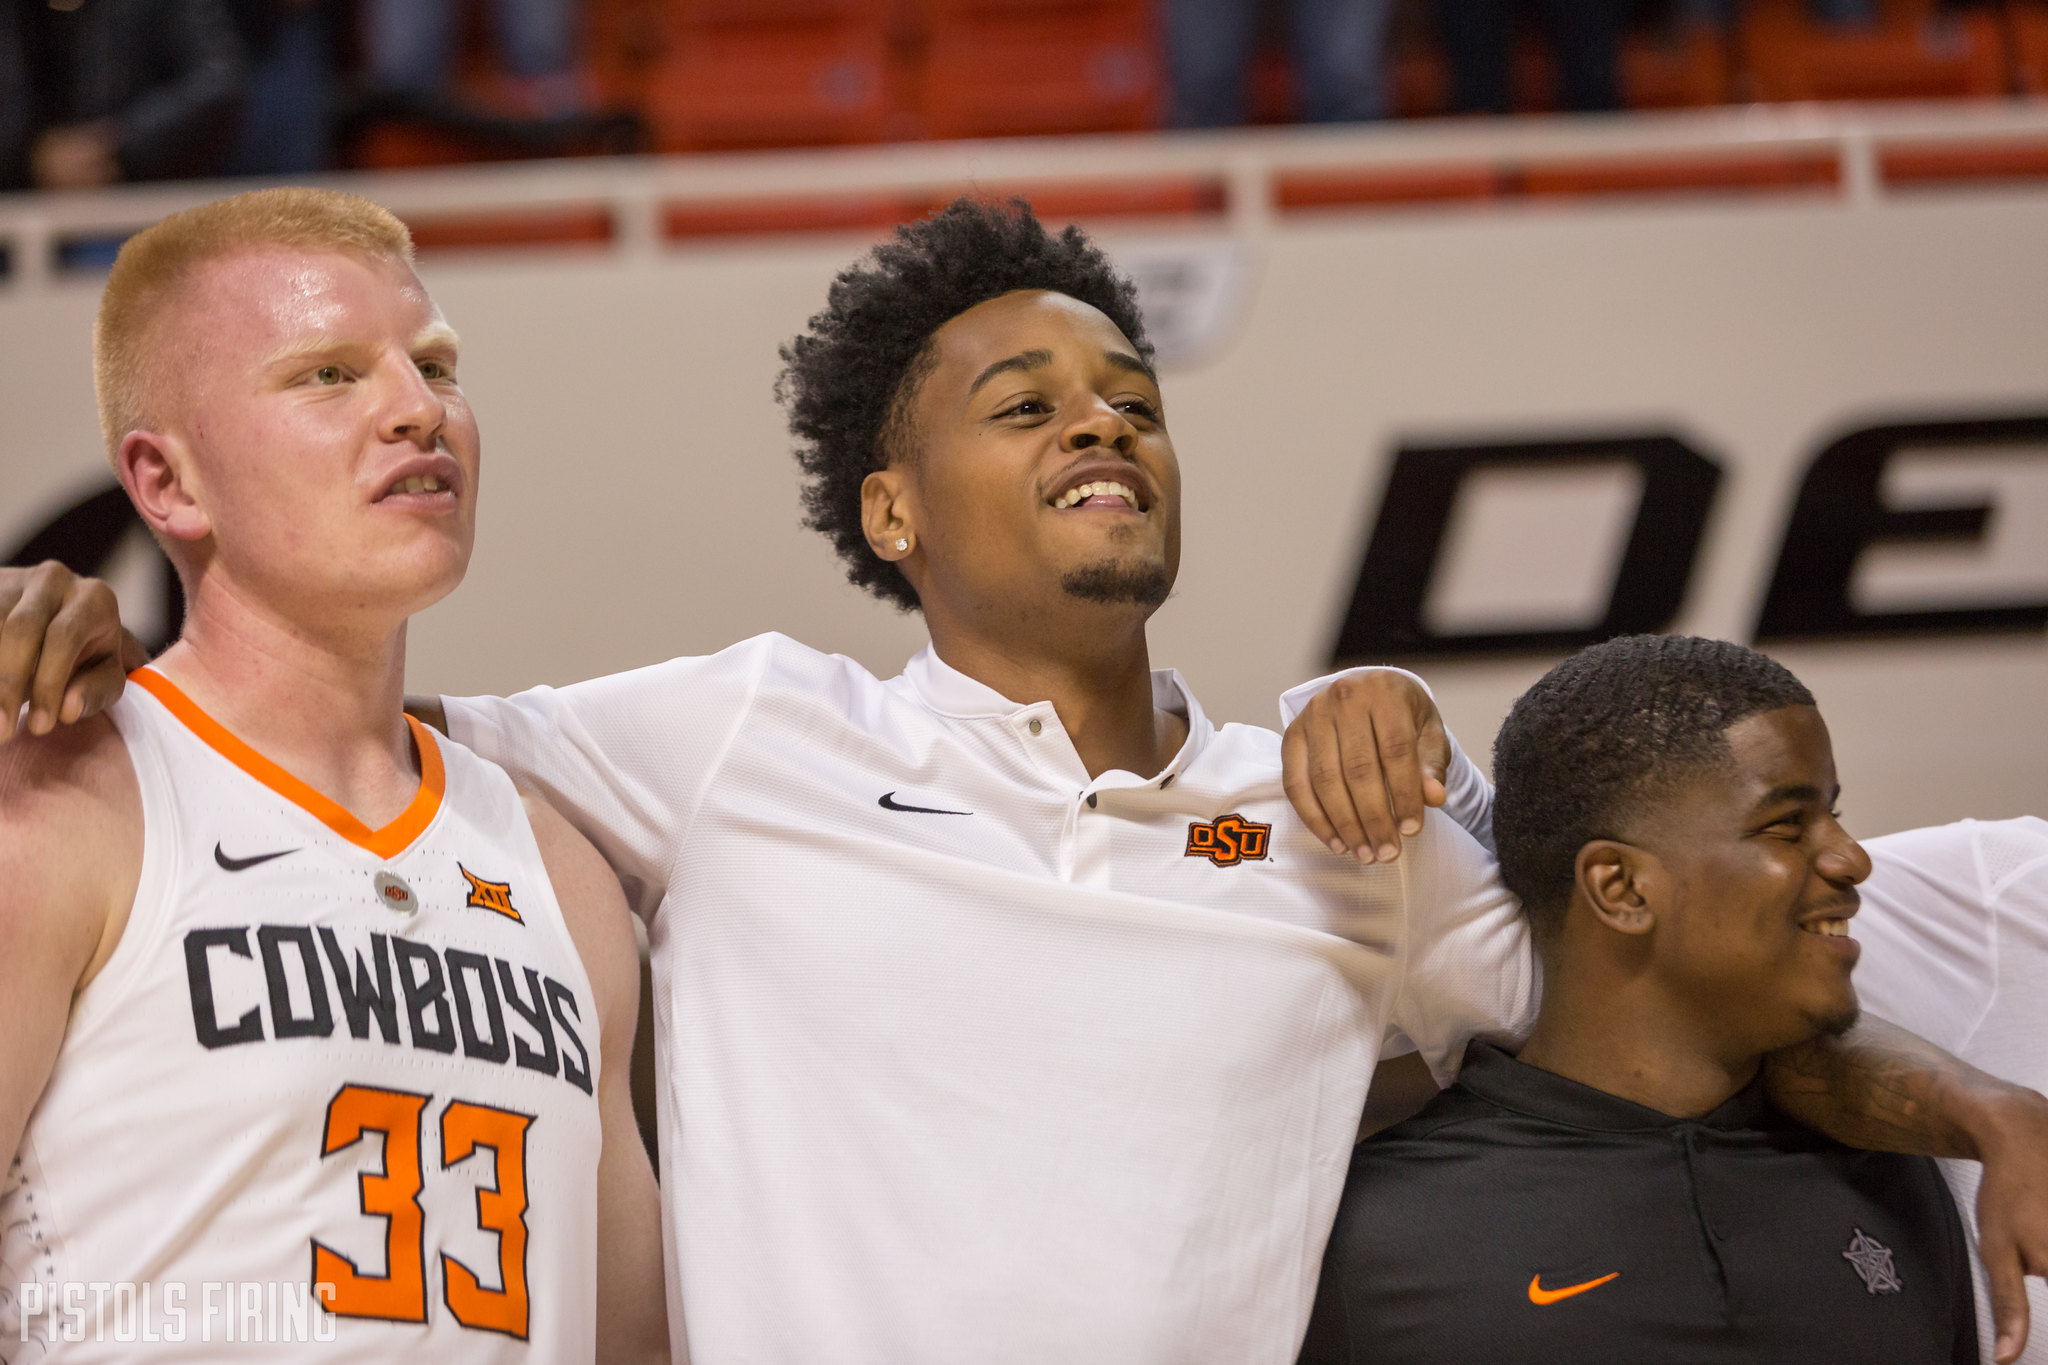 Curtis Jones Leaving Oklahoma State as Potential Grad Transfer, Report Says | Pistols Firing